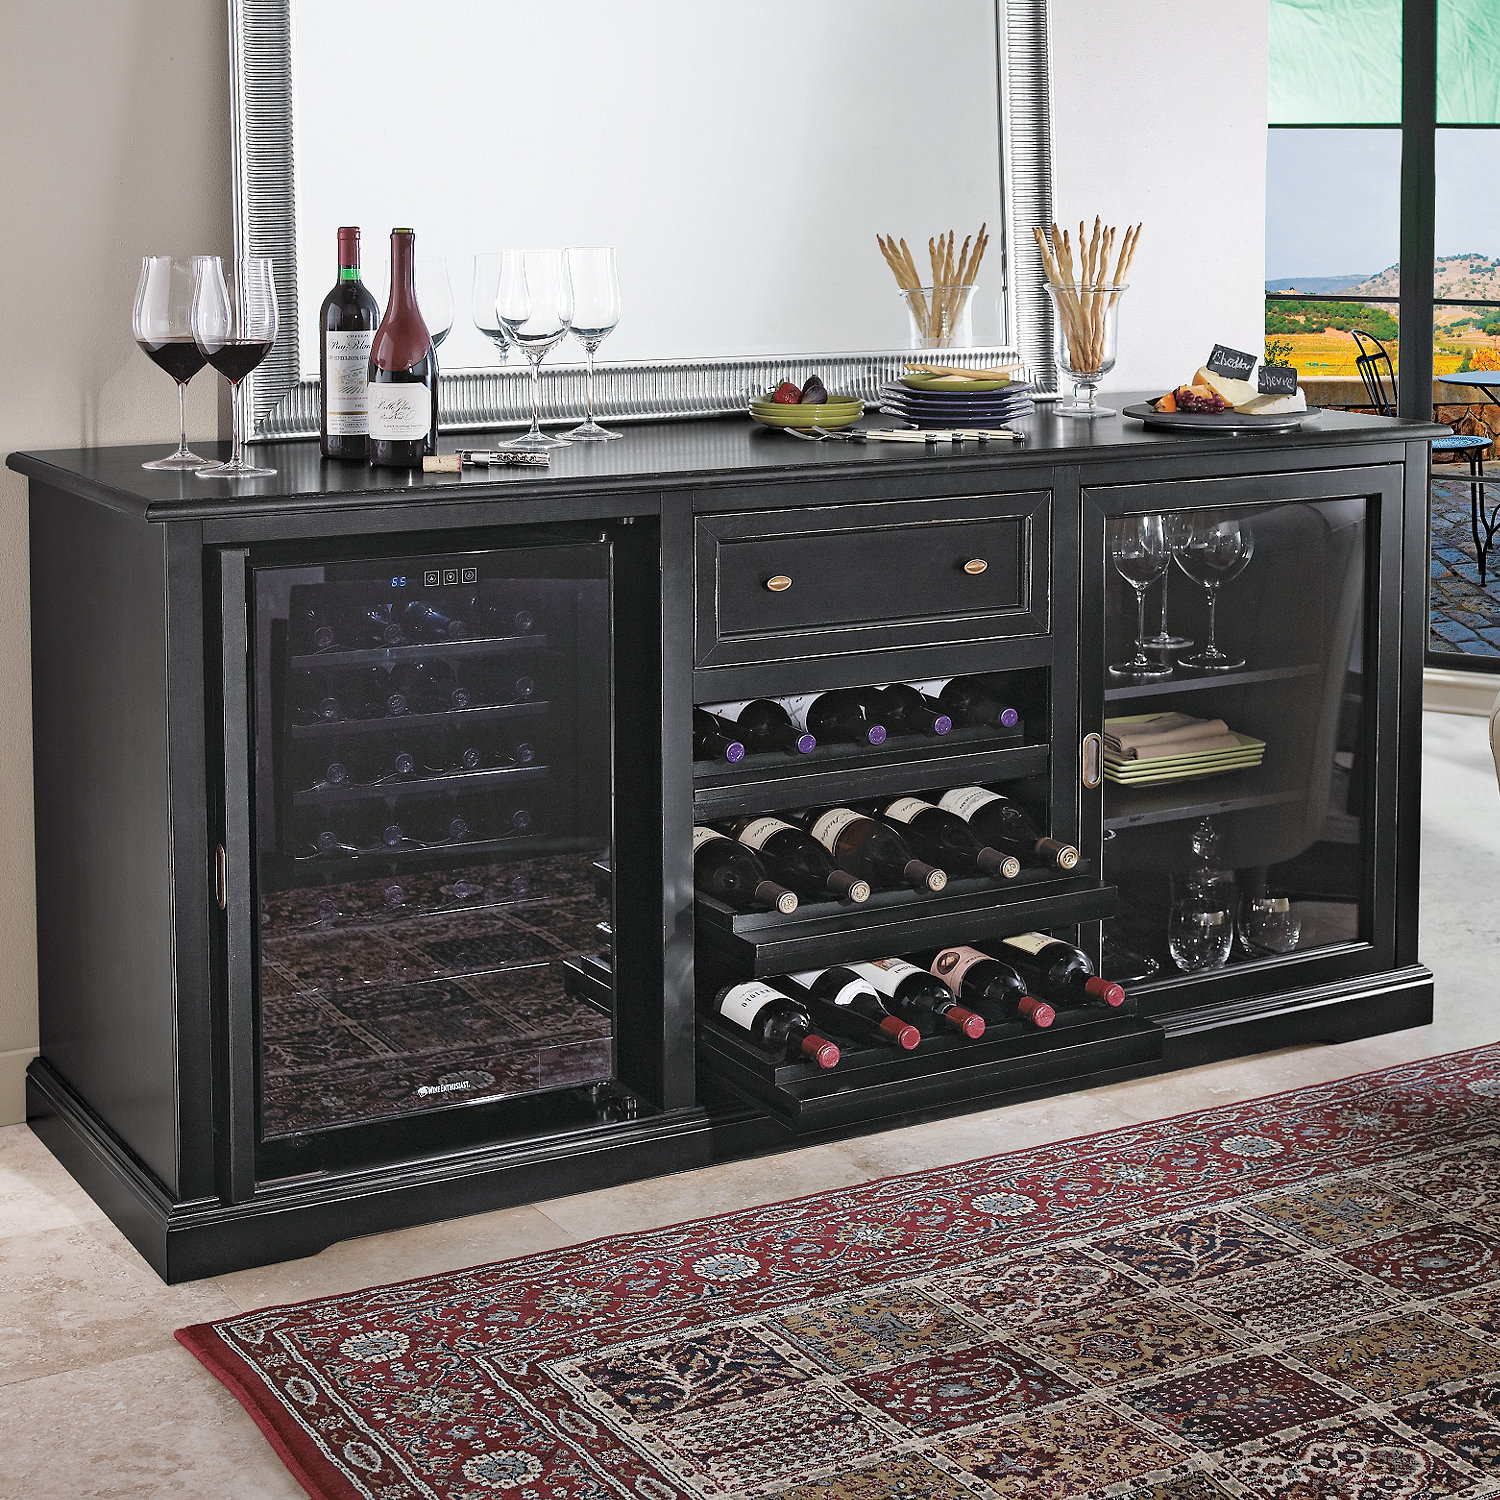 Preparing Zoom & Siena Wine Credenza (Nero) with Two Wine Refrigerators - Wine Enthusiast